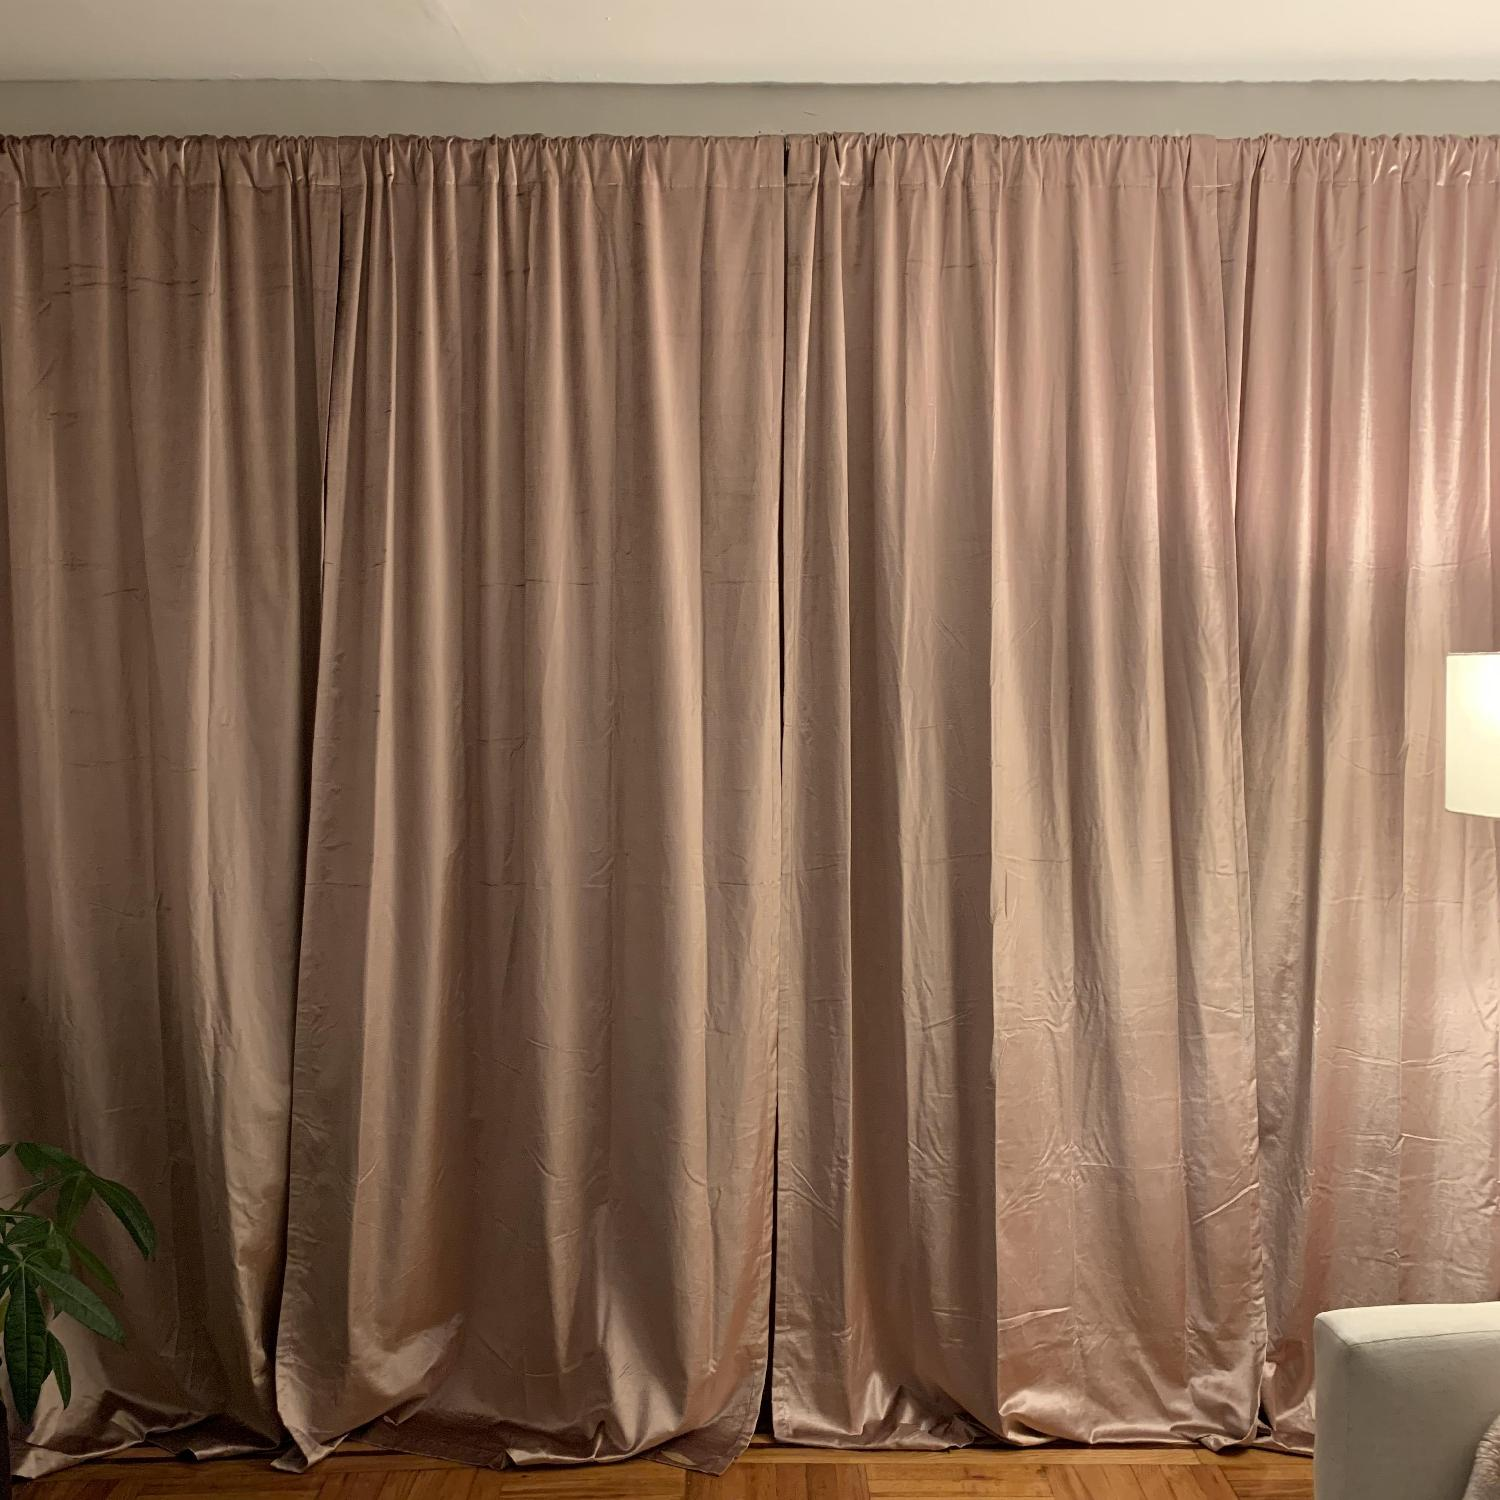 West Elm Cotton Luster Velvet Curtains in Dusty Blush-0